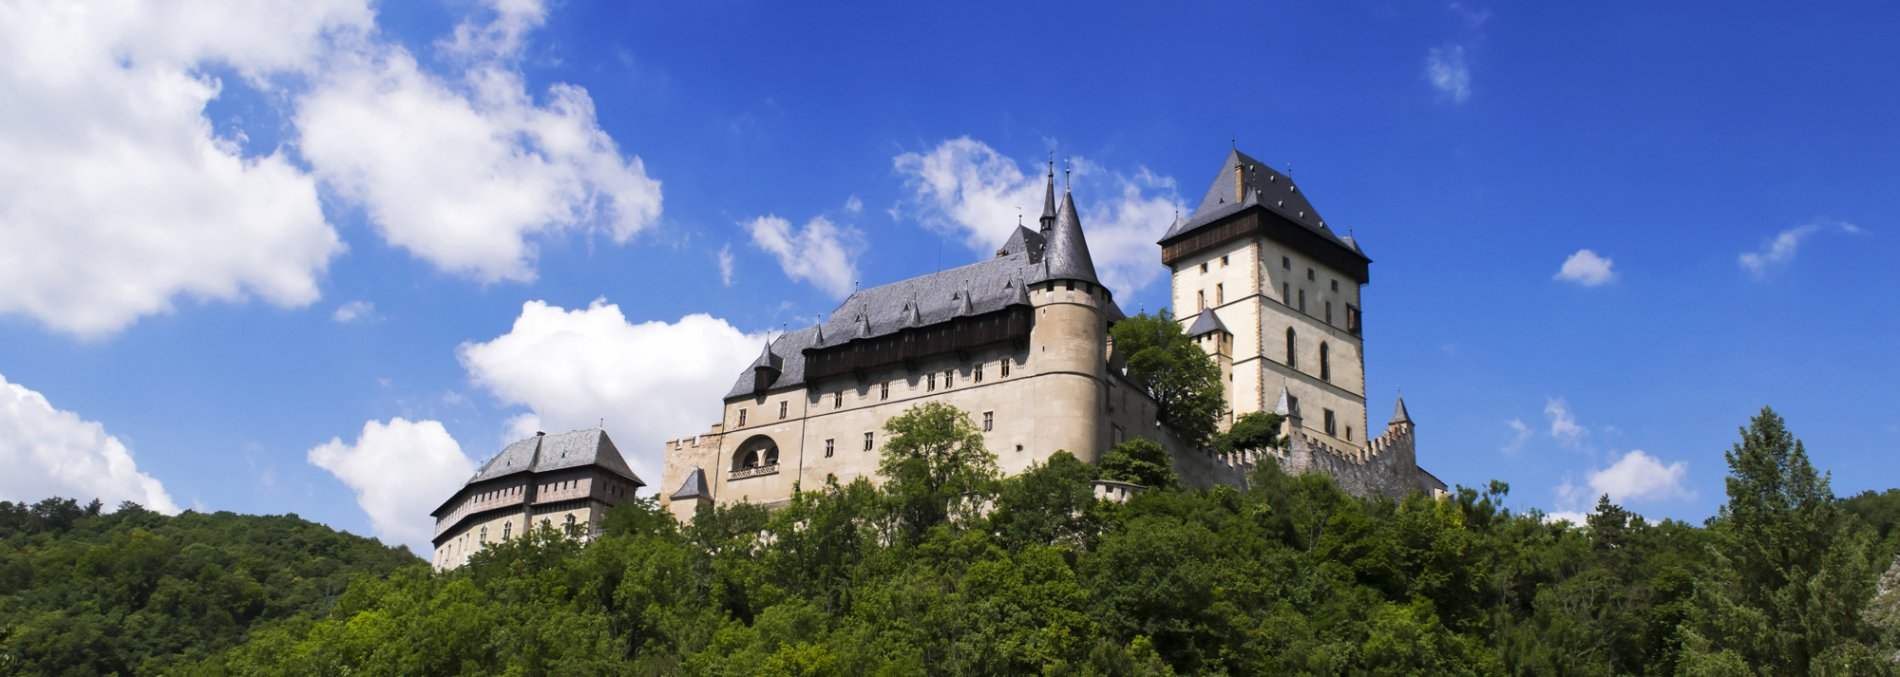 Karlstejn Castle Tour – Prague to Karlstejn Castle